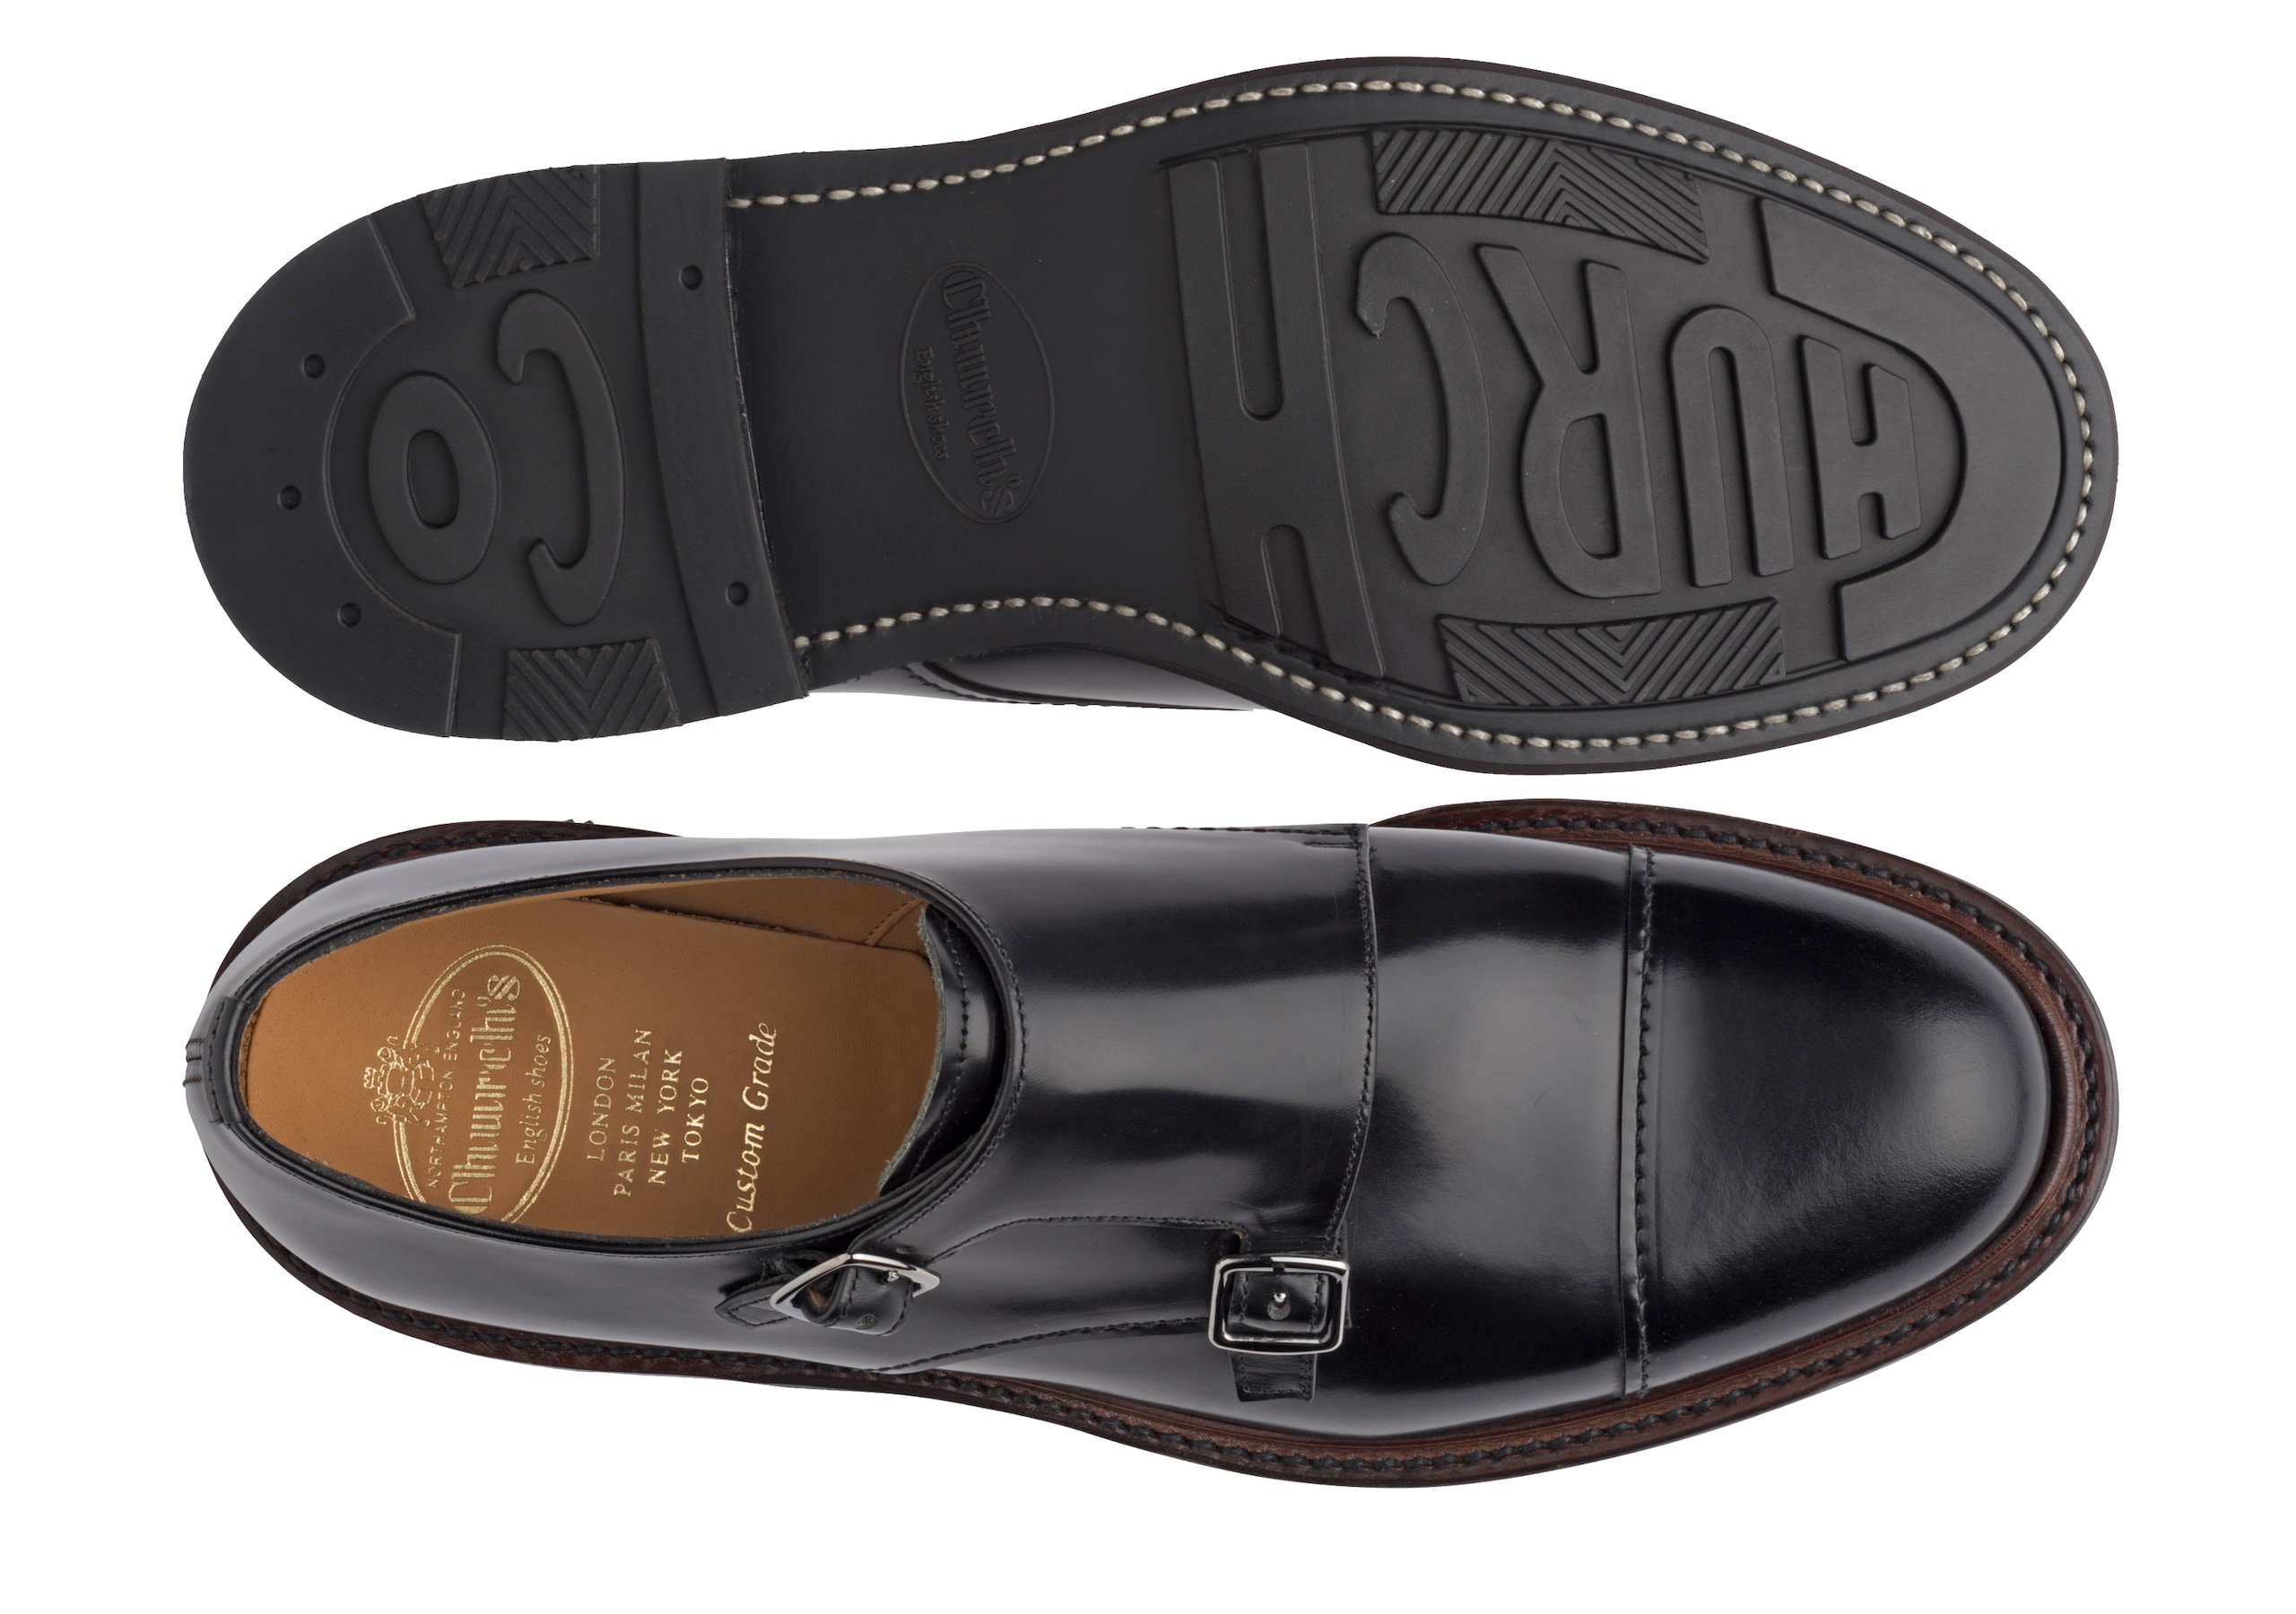 Wadebridge Church's Polished Binder Monk Strap Black